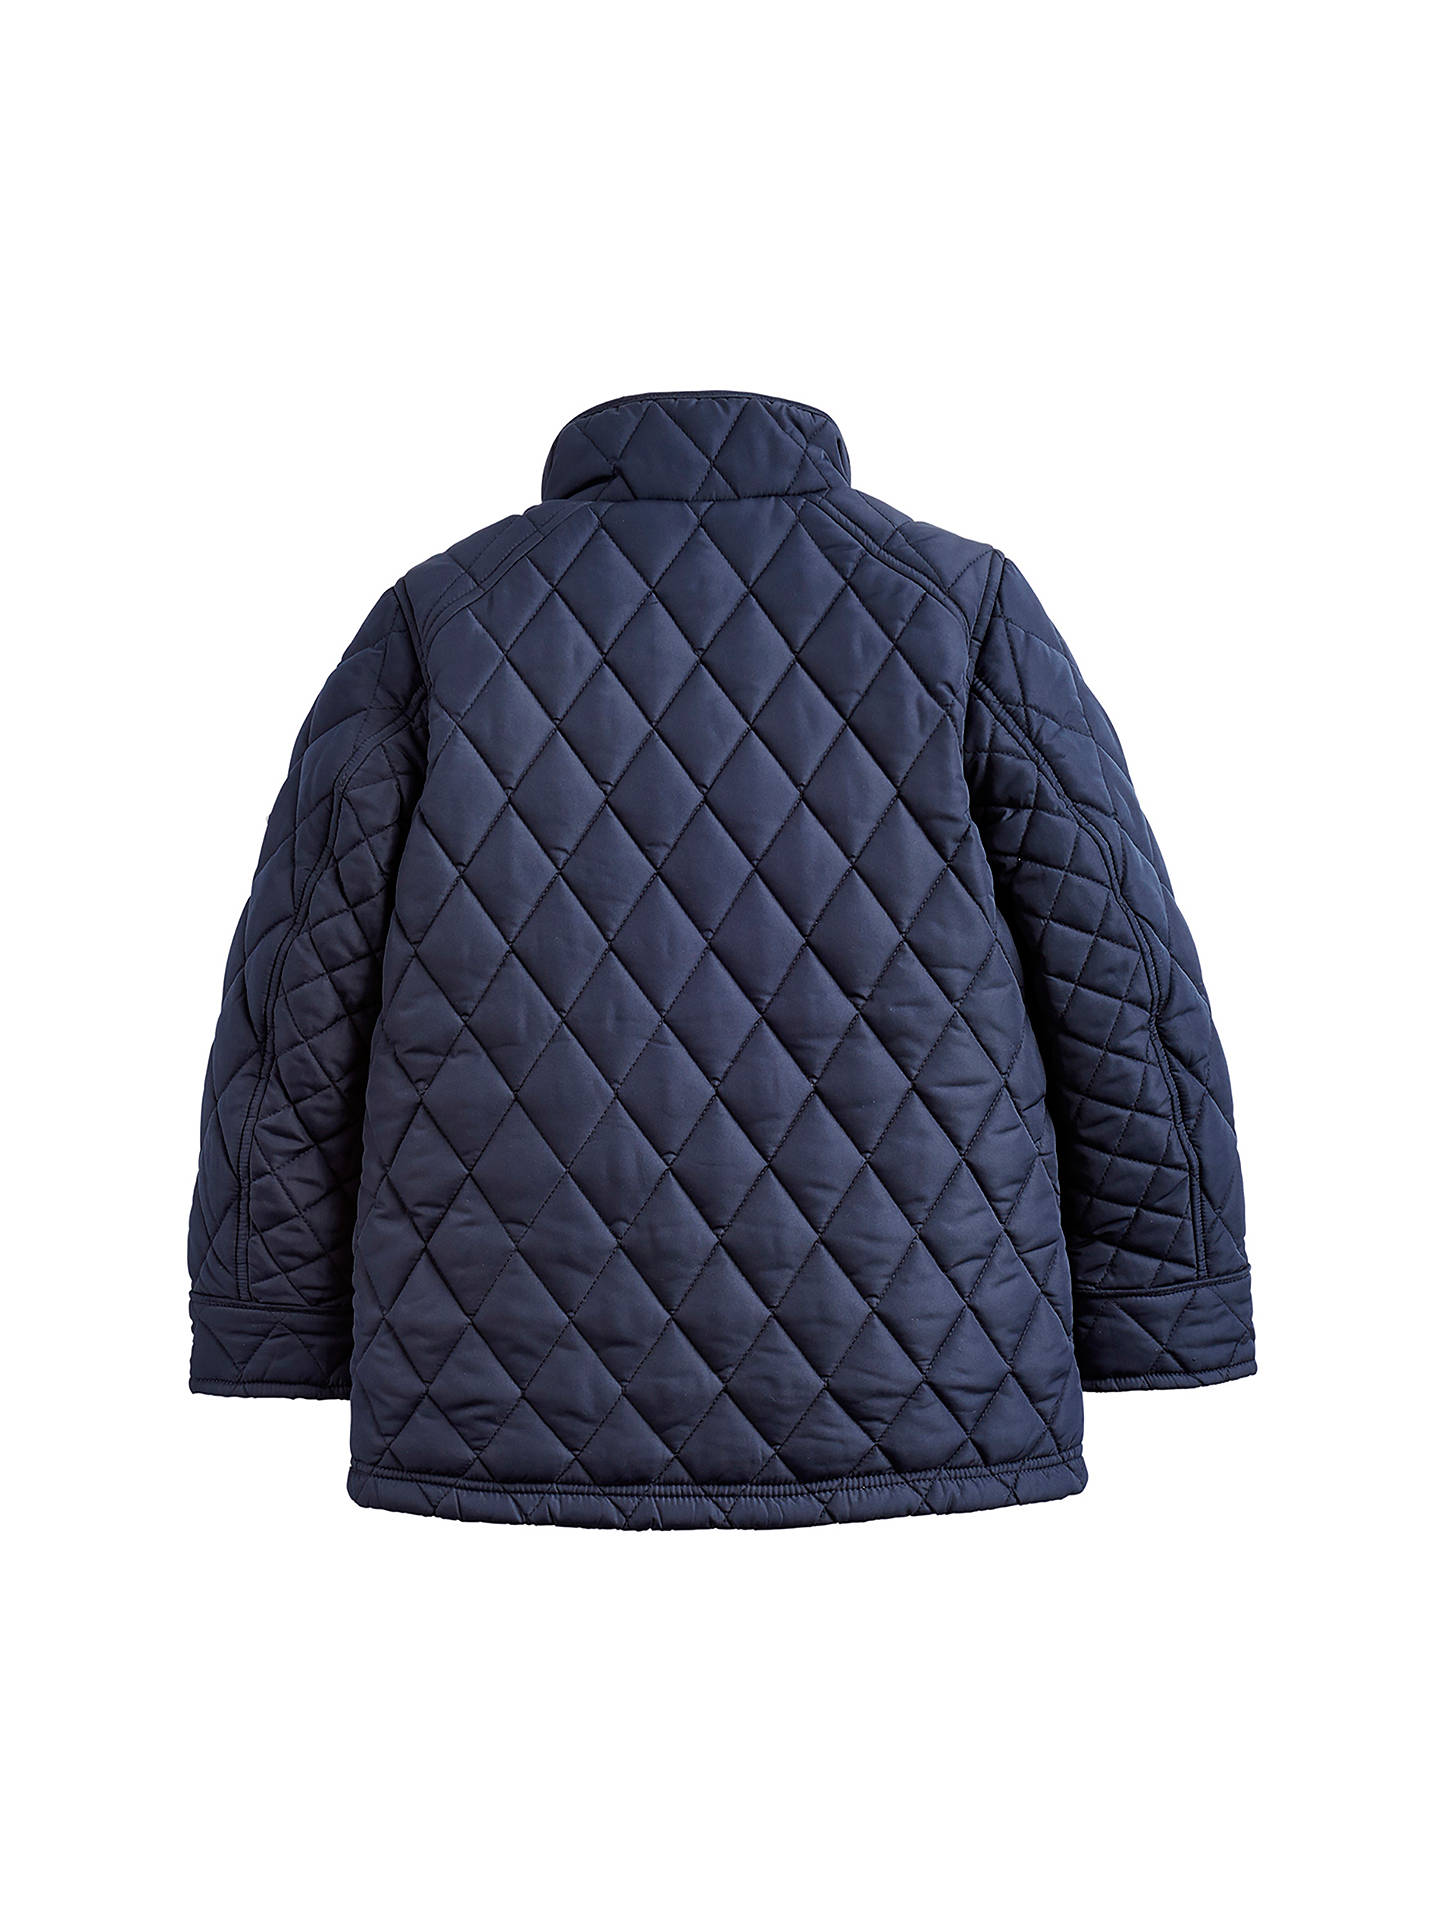 BuyLittle Joule Boys' Stafford Quilted Jacket, Navy, 4 years Online at johnlewis.com